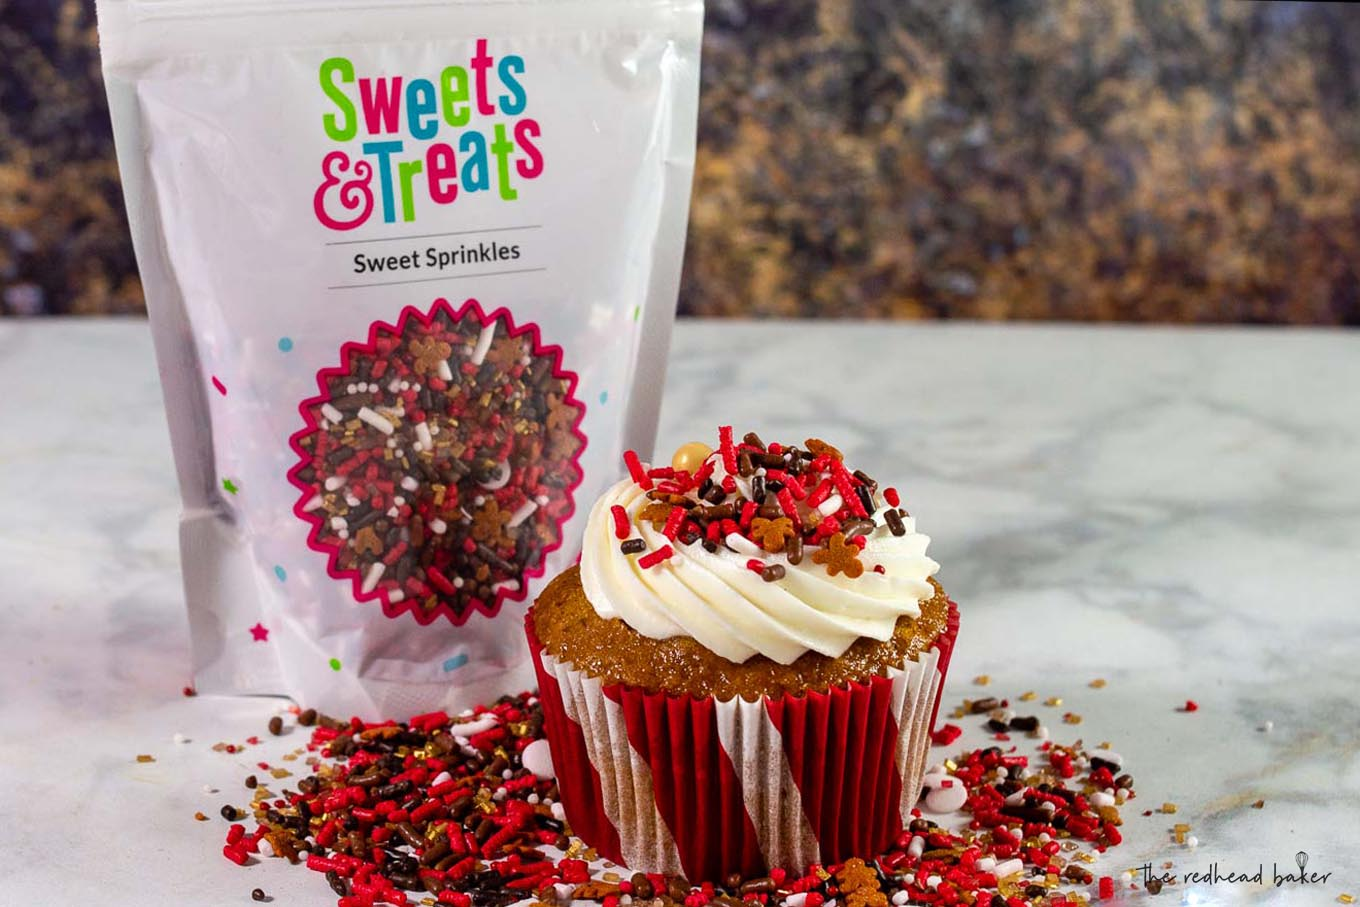 A gingerbread cupcake with cream cheese frosting in front of a bag of Sweets and Treats gingerbread sprinkles